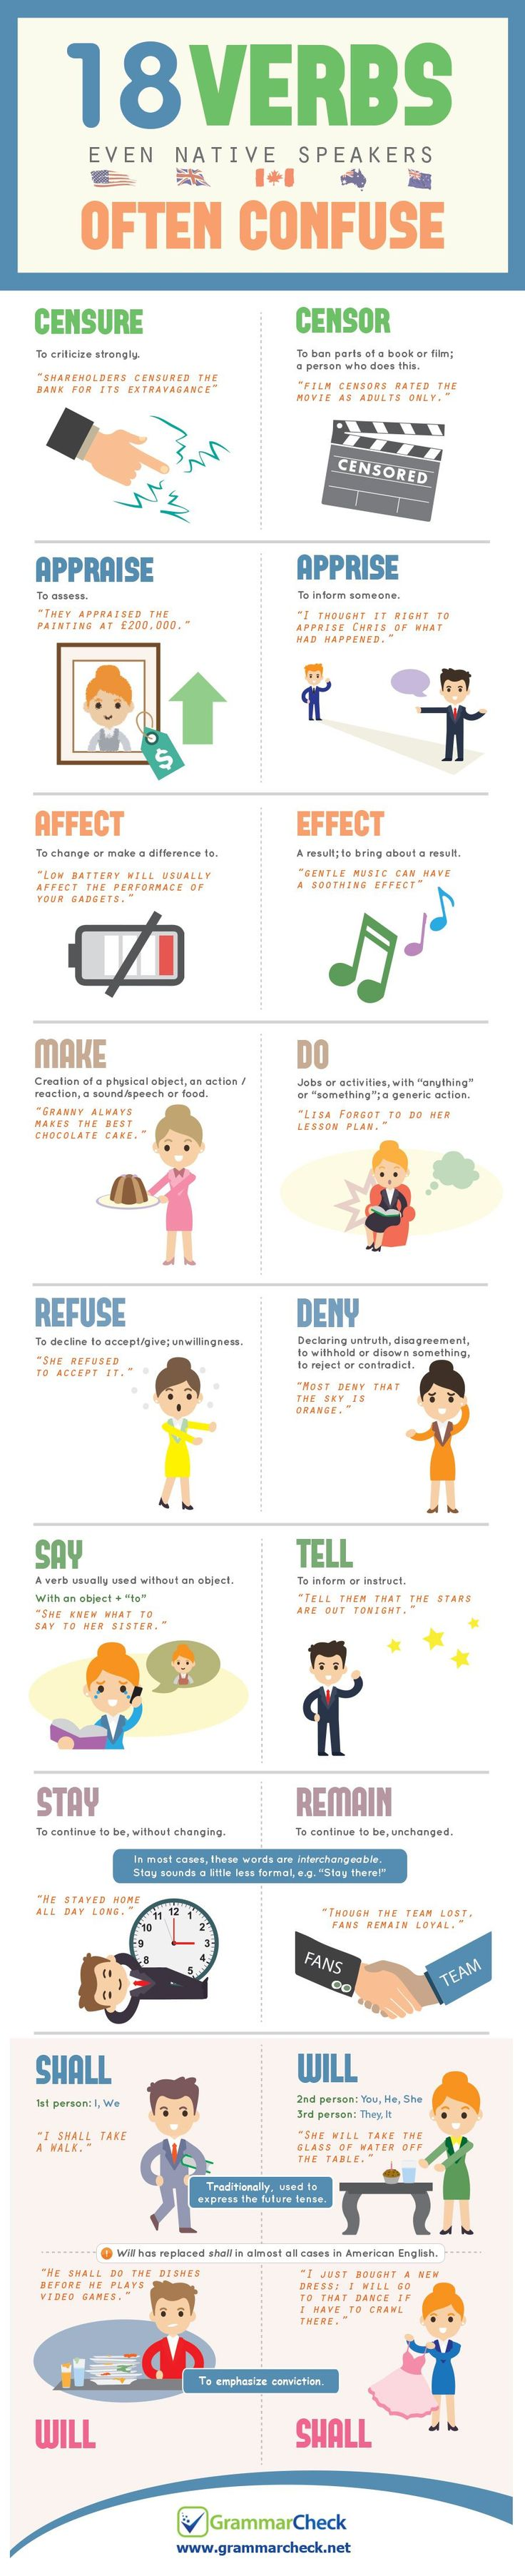 18 Verbs Even Native Speakers Often Confuse